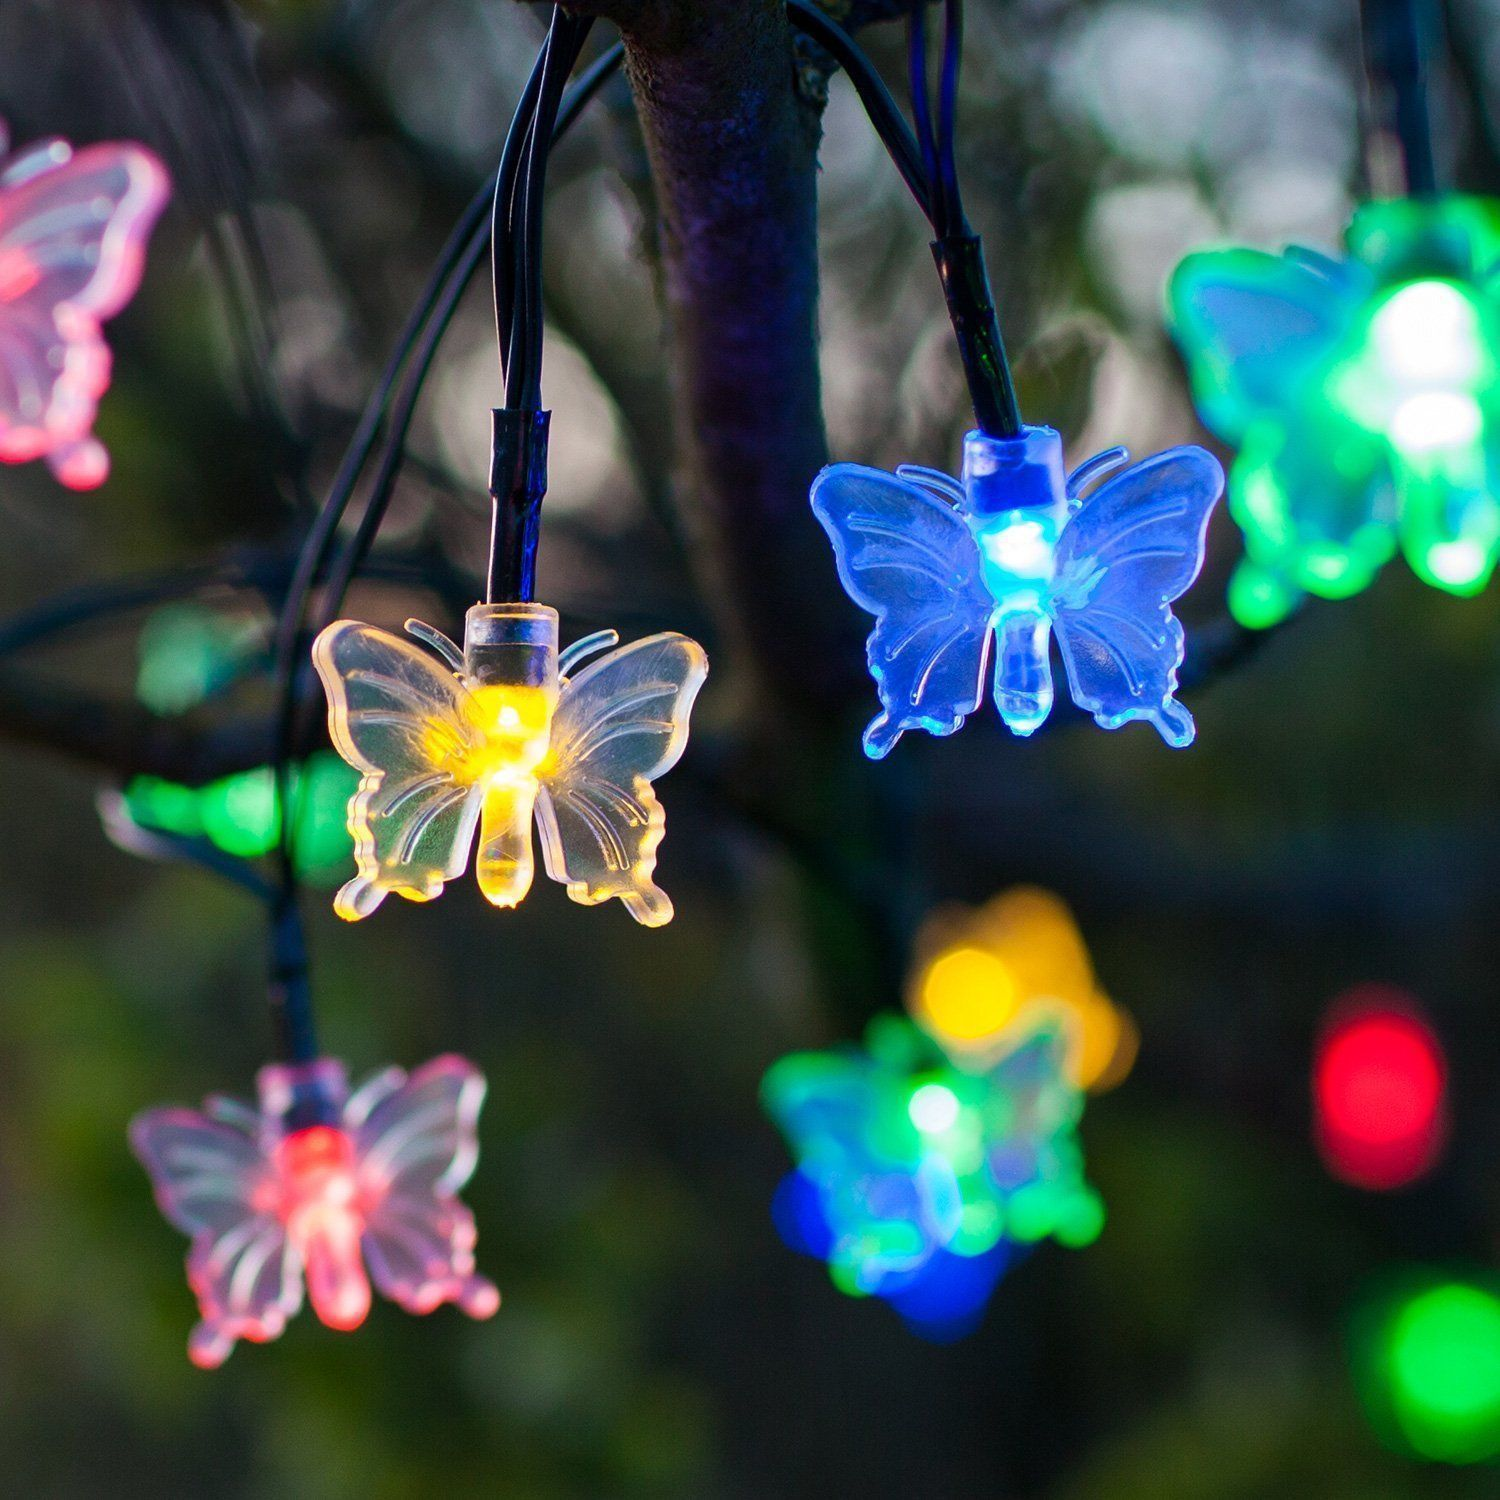 599 gbp 35 led solar string lights butterflies multi coloured 599 gbp 35 led solar string lights butterflies multi coloured white garden lights ebay home garden aloadofball Image collections